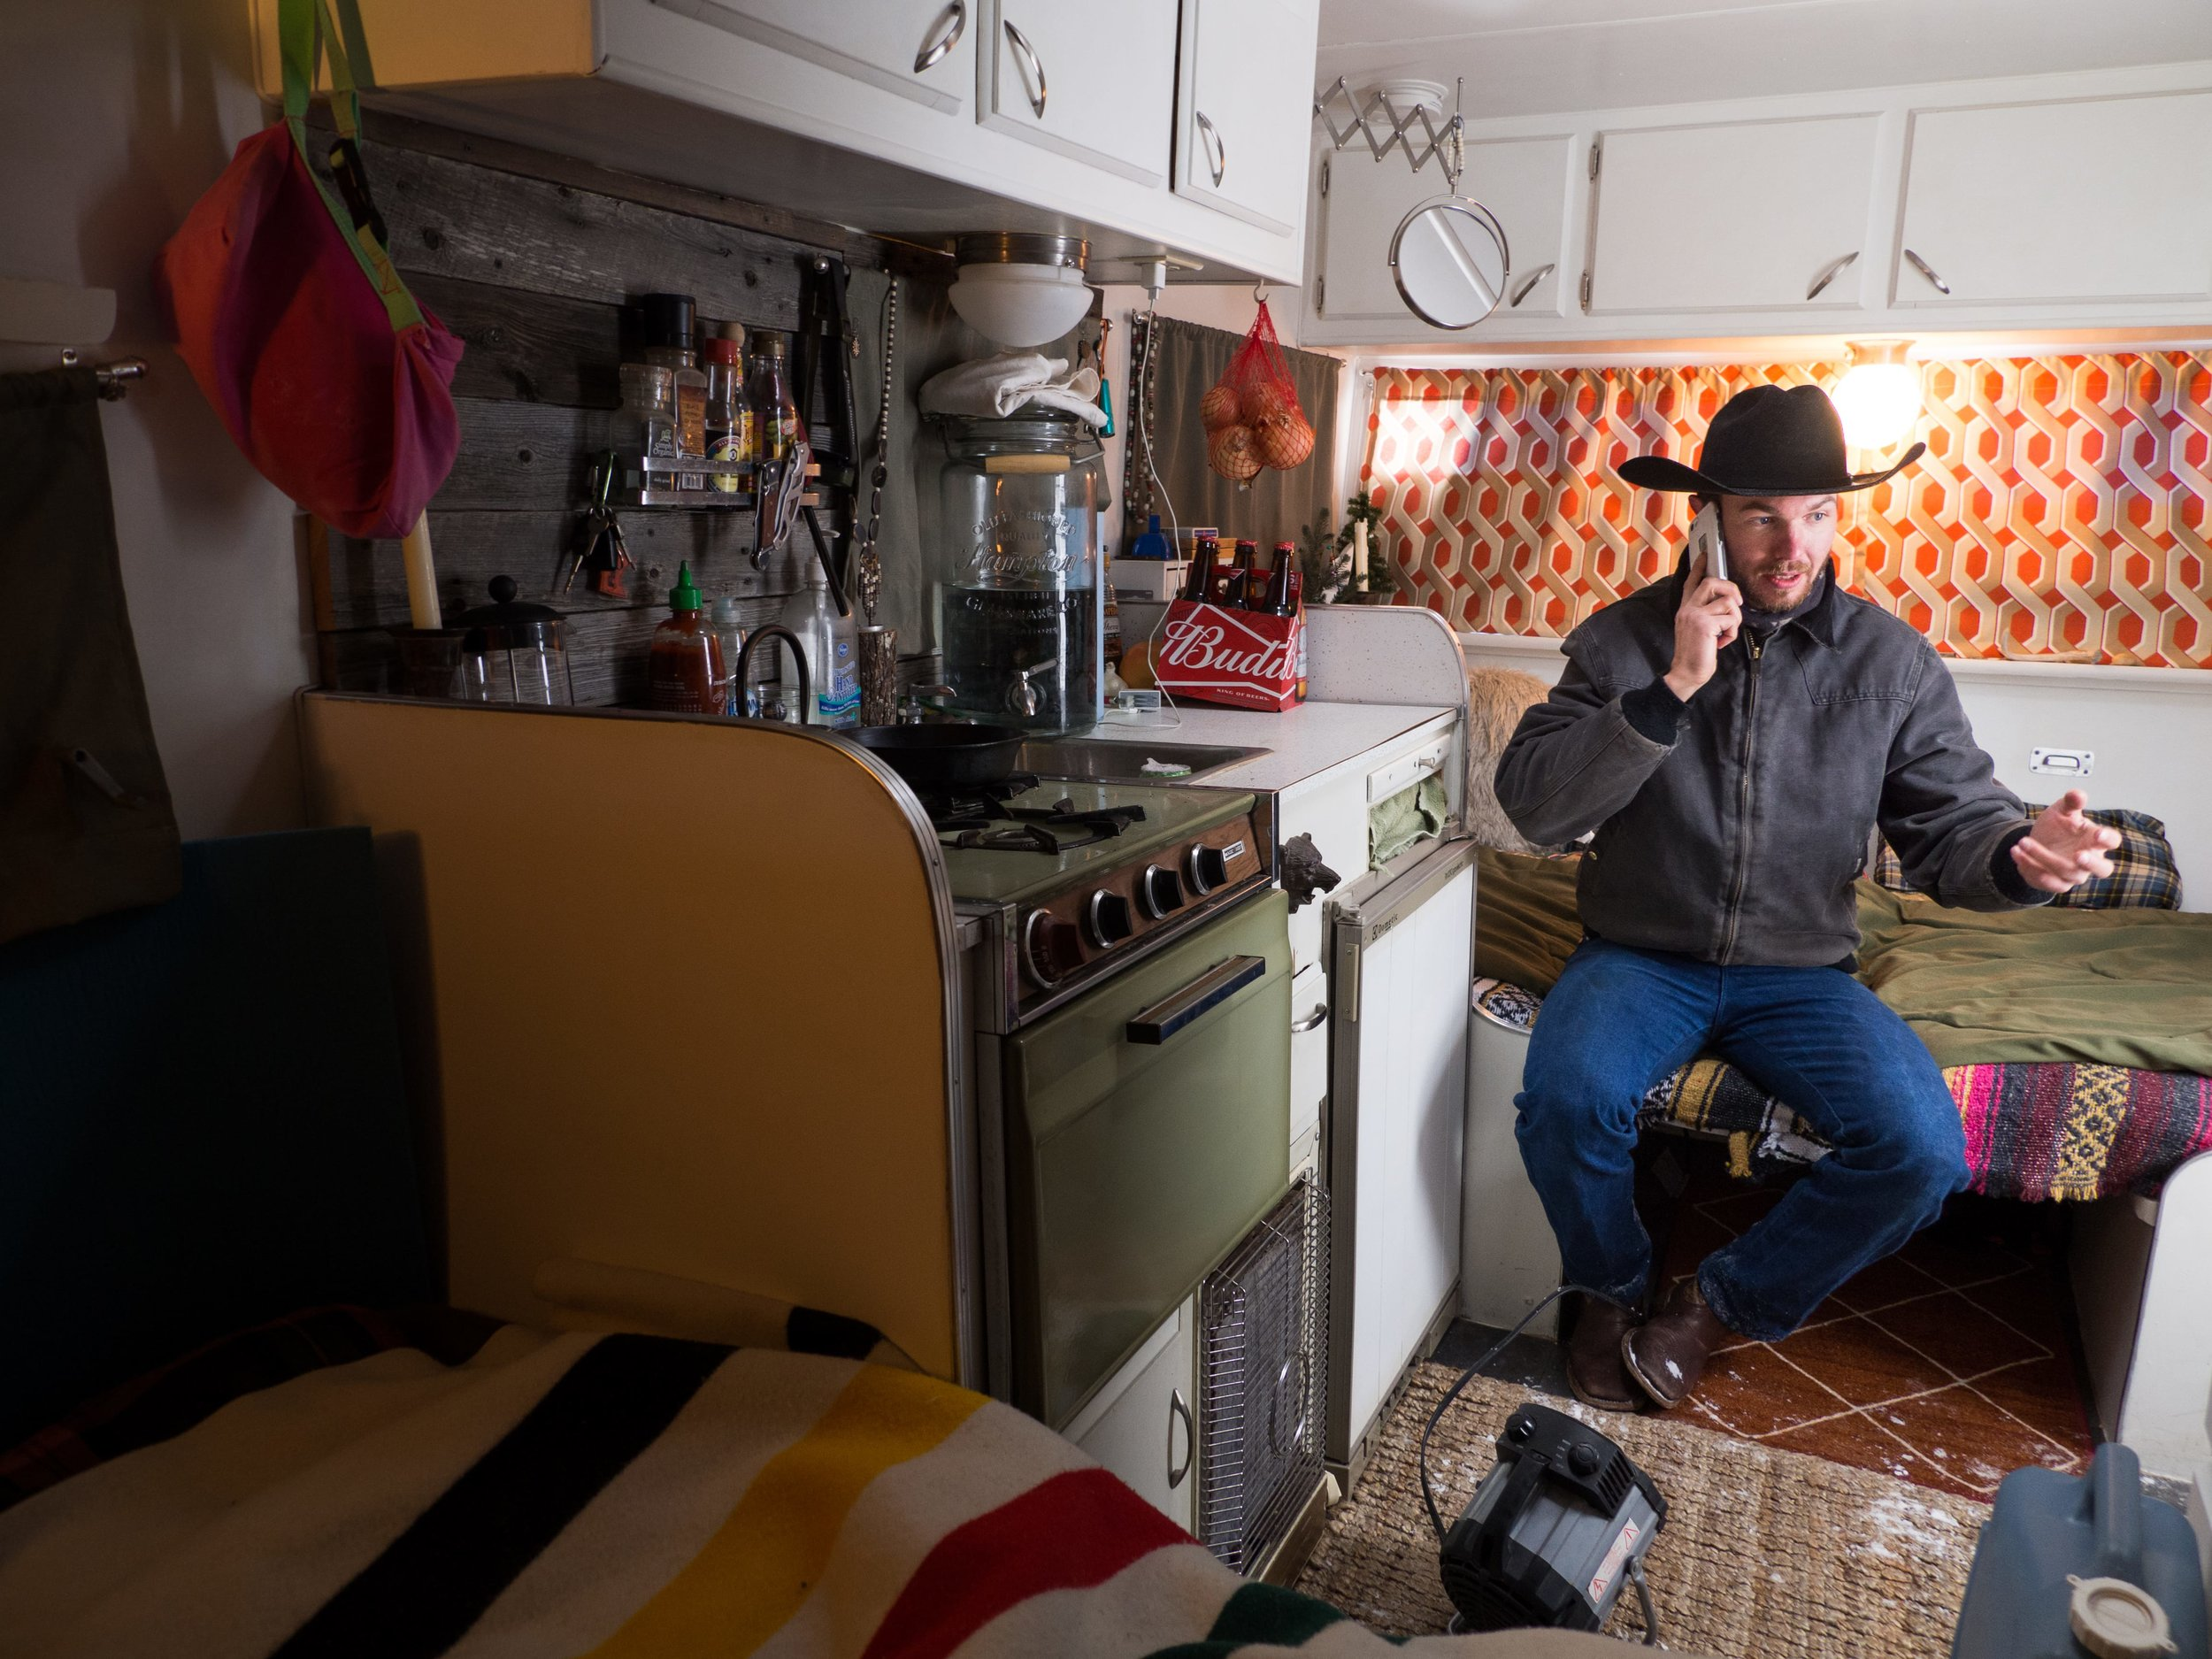 Corey owns a $400k condo in Big Sky, Montana, the state's most prestigious ski town, and manages 6 other rental properties. To make ends meet and grow his business he lives in a trailer during the winter outside of town. Shot on Olympus E-M1 Mark II, M.Zuiko 9-18mm.